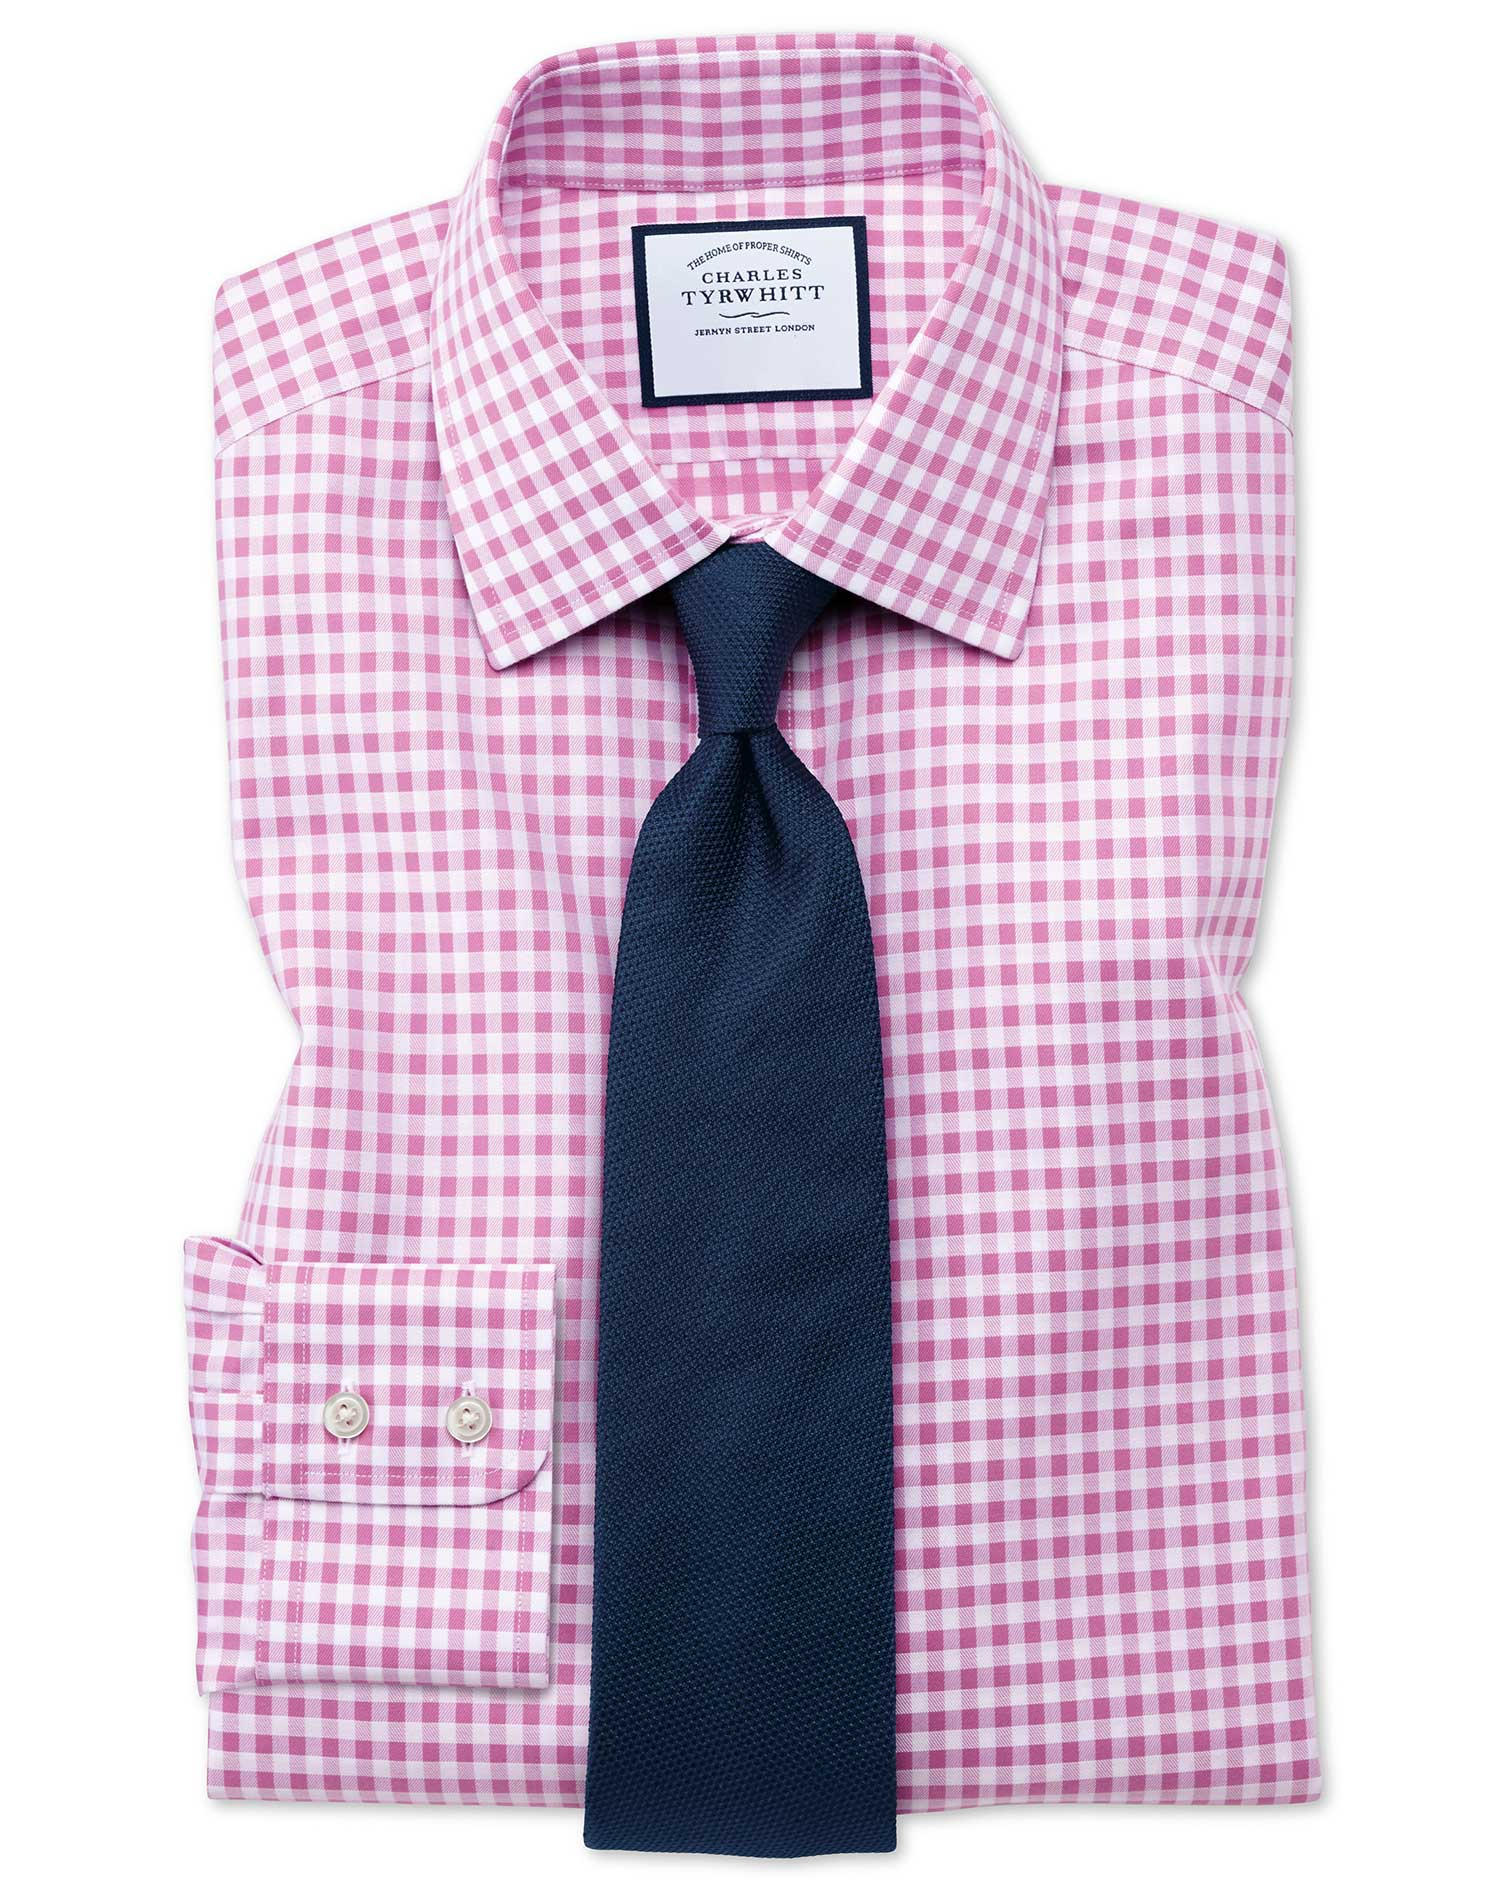 Slim Fit Non-Iron Gingham Pink Cotton Formal Shirt Single Cuff Size 16/38 by Charles Tyrwhitt